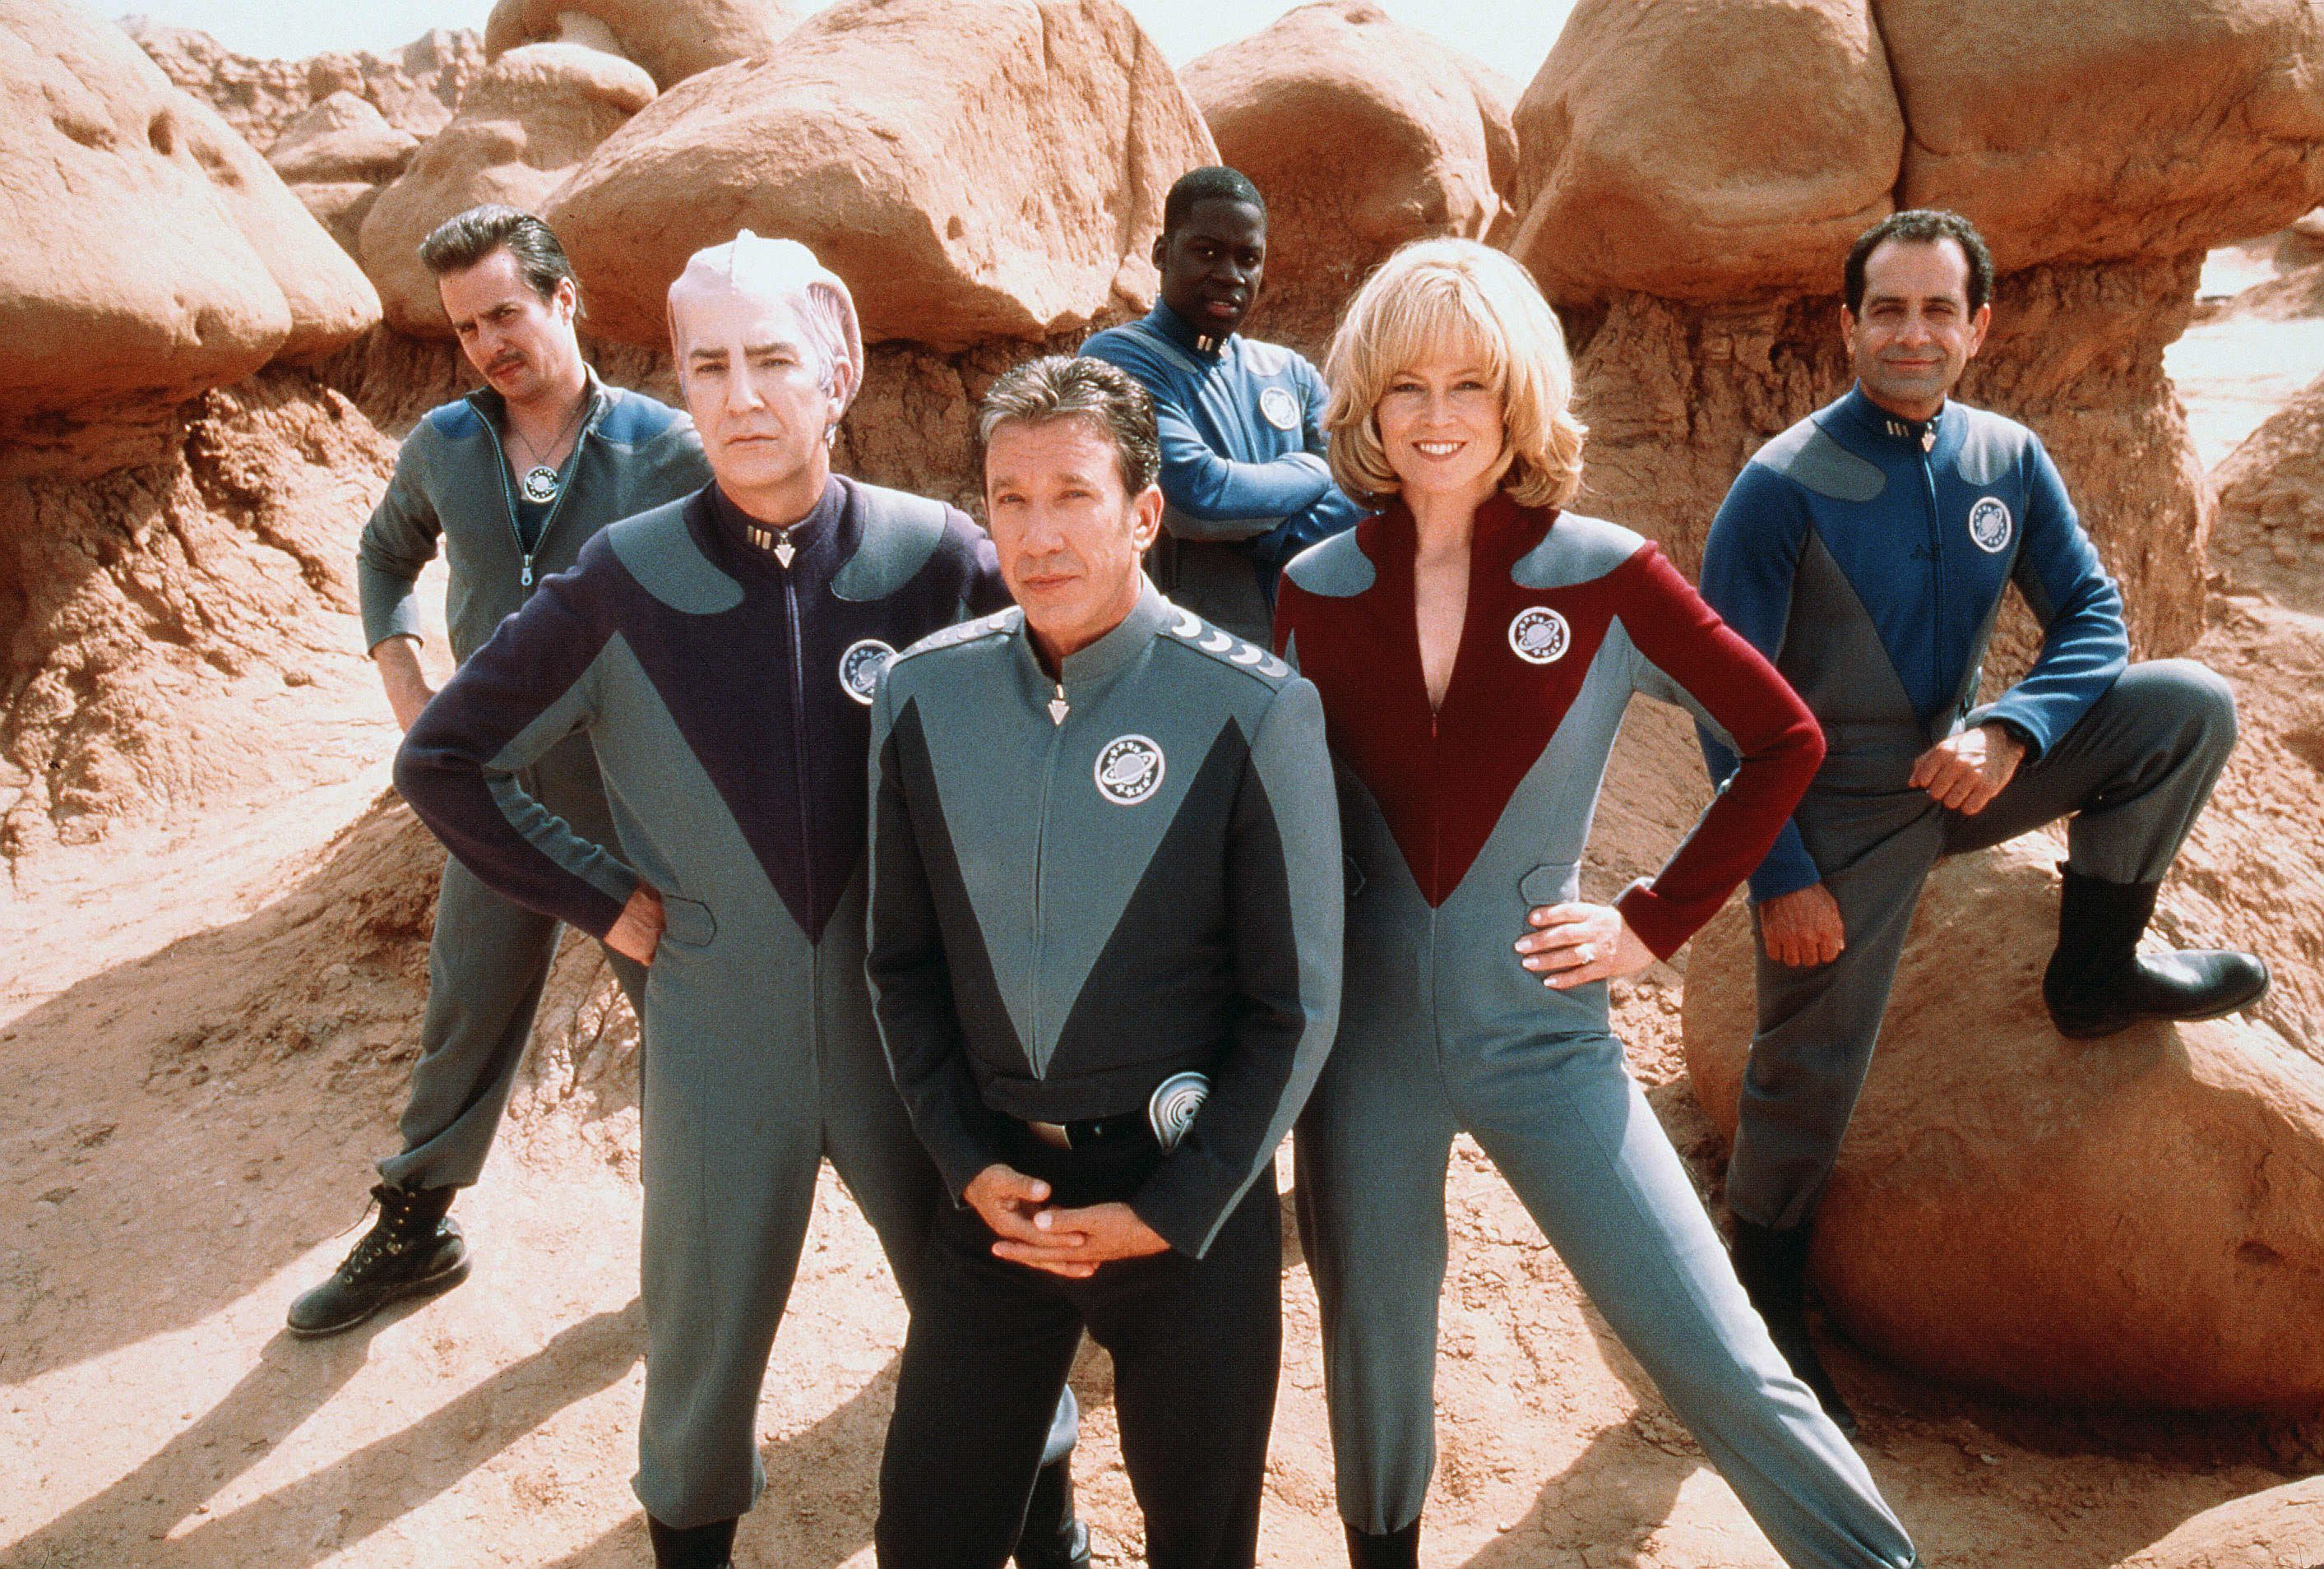 Galaxy Quest Remains One of the Greatest Sci-Fi Comedies of All Time